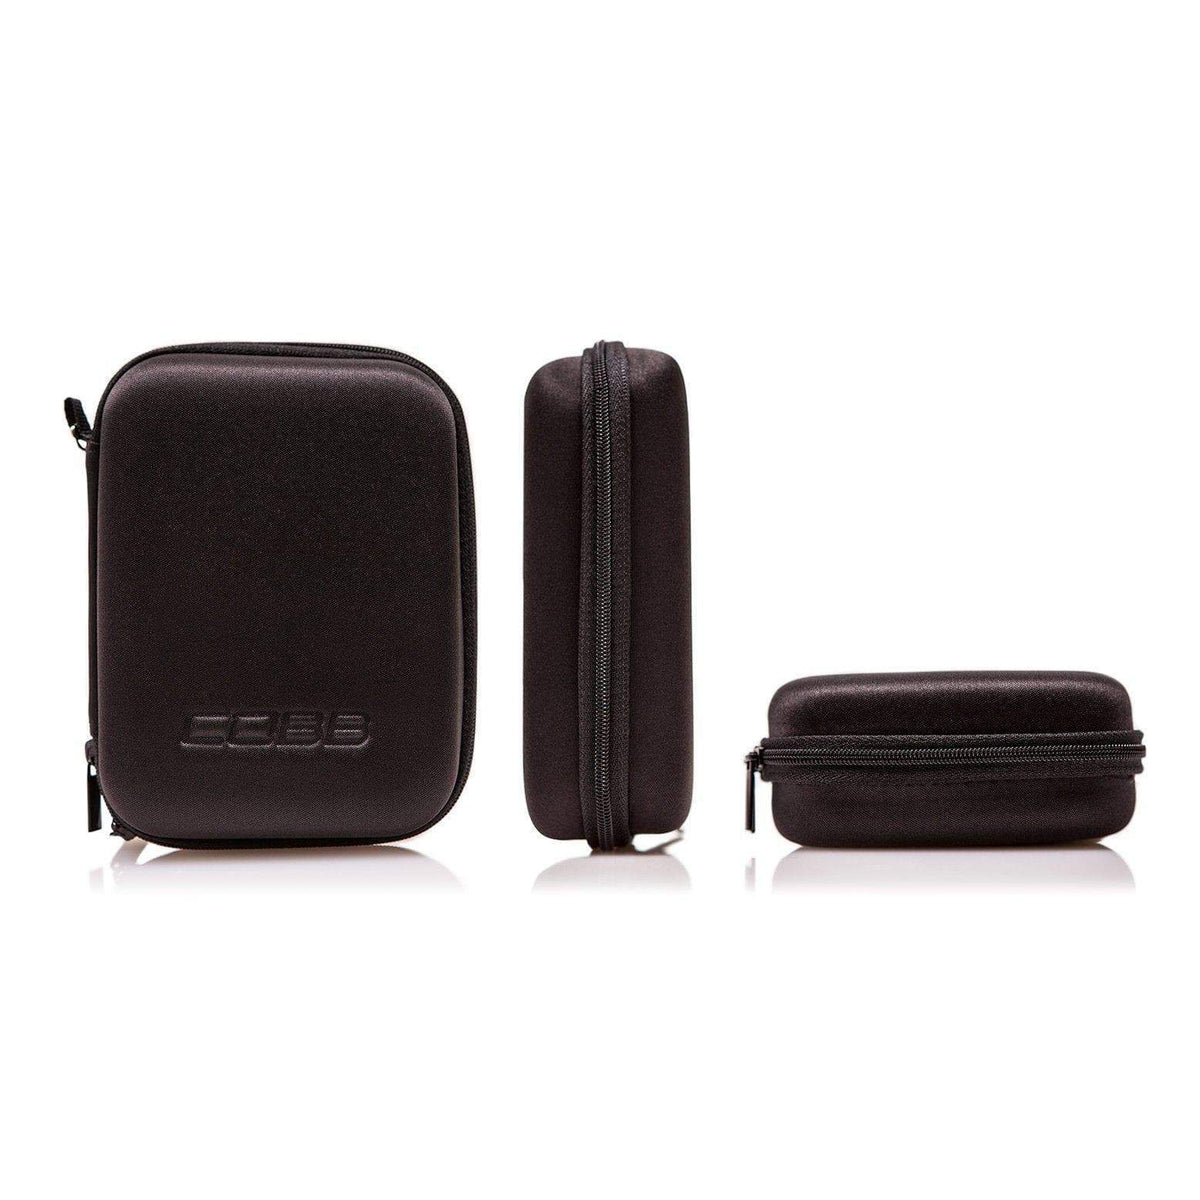 AP accessories case